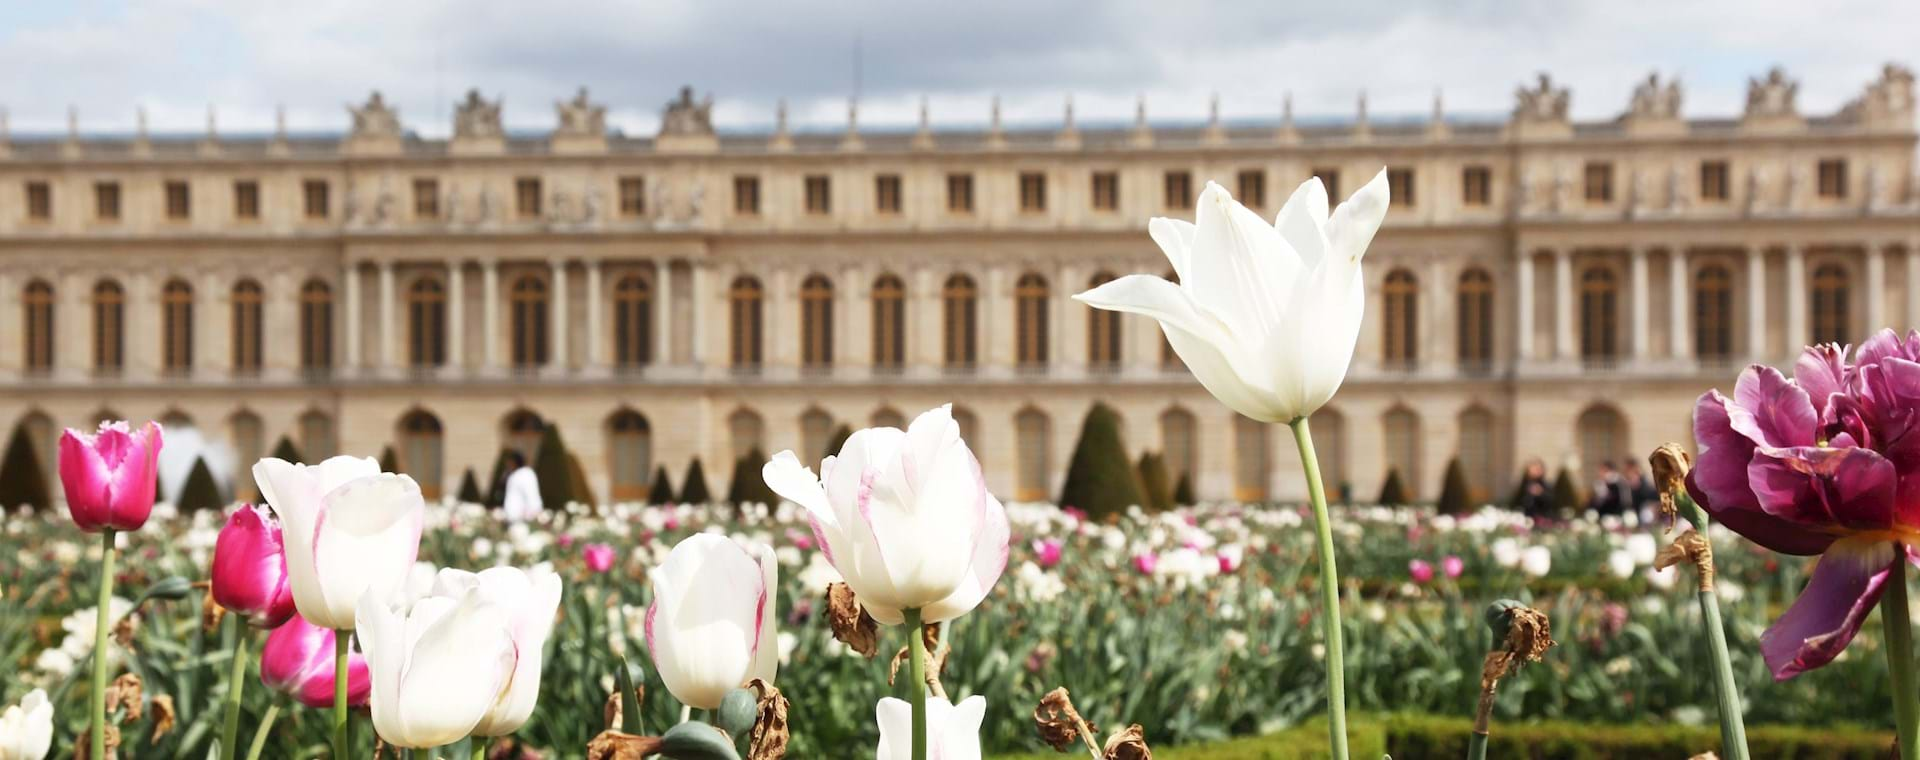 Versailles Palace & Gardens Tour with Fountain Show from Paris